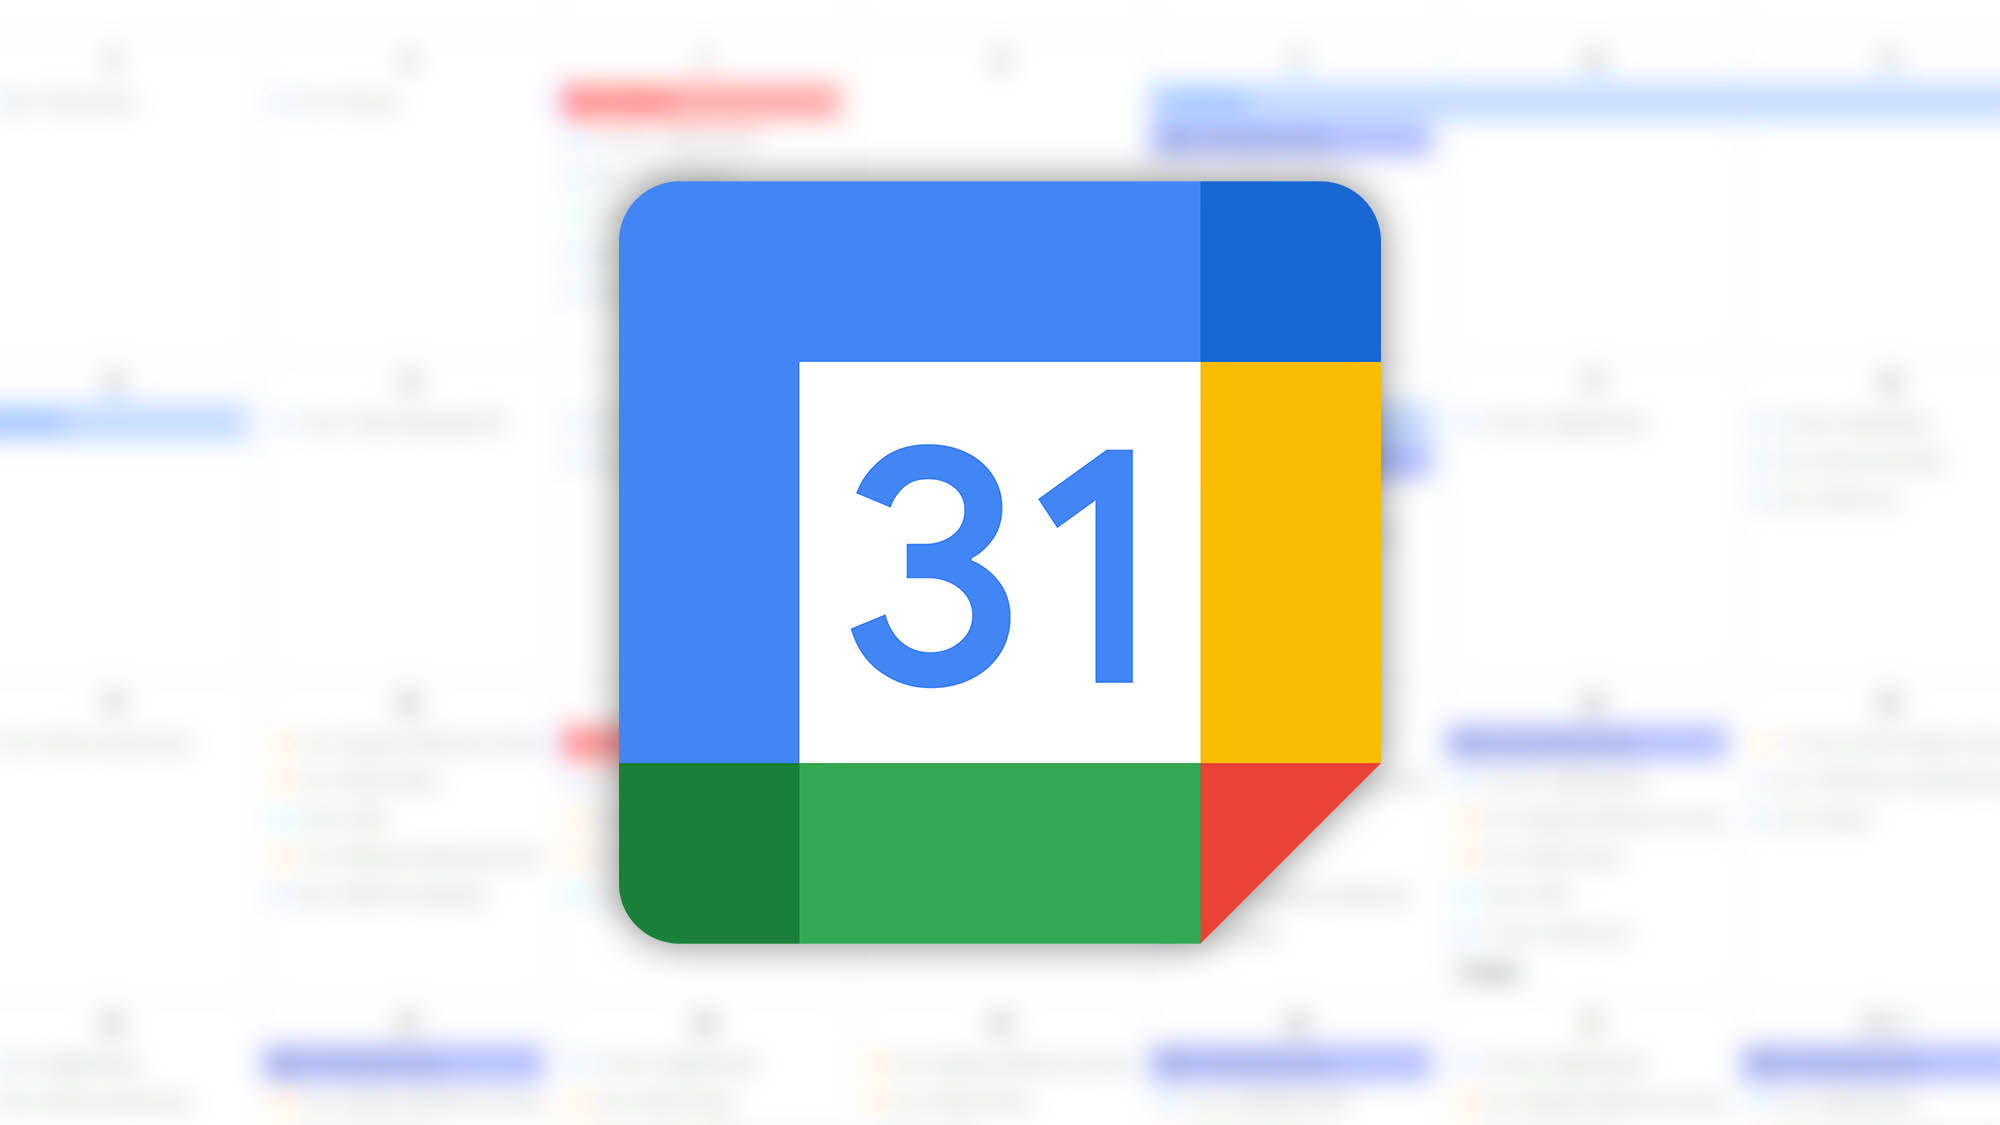 You can now hide holidays that won't give you time off in Google Calendar